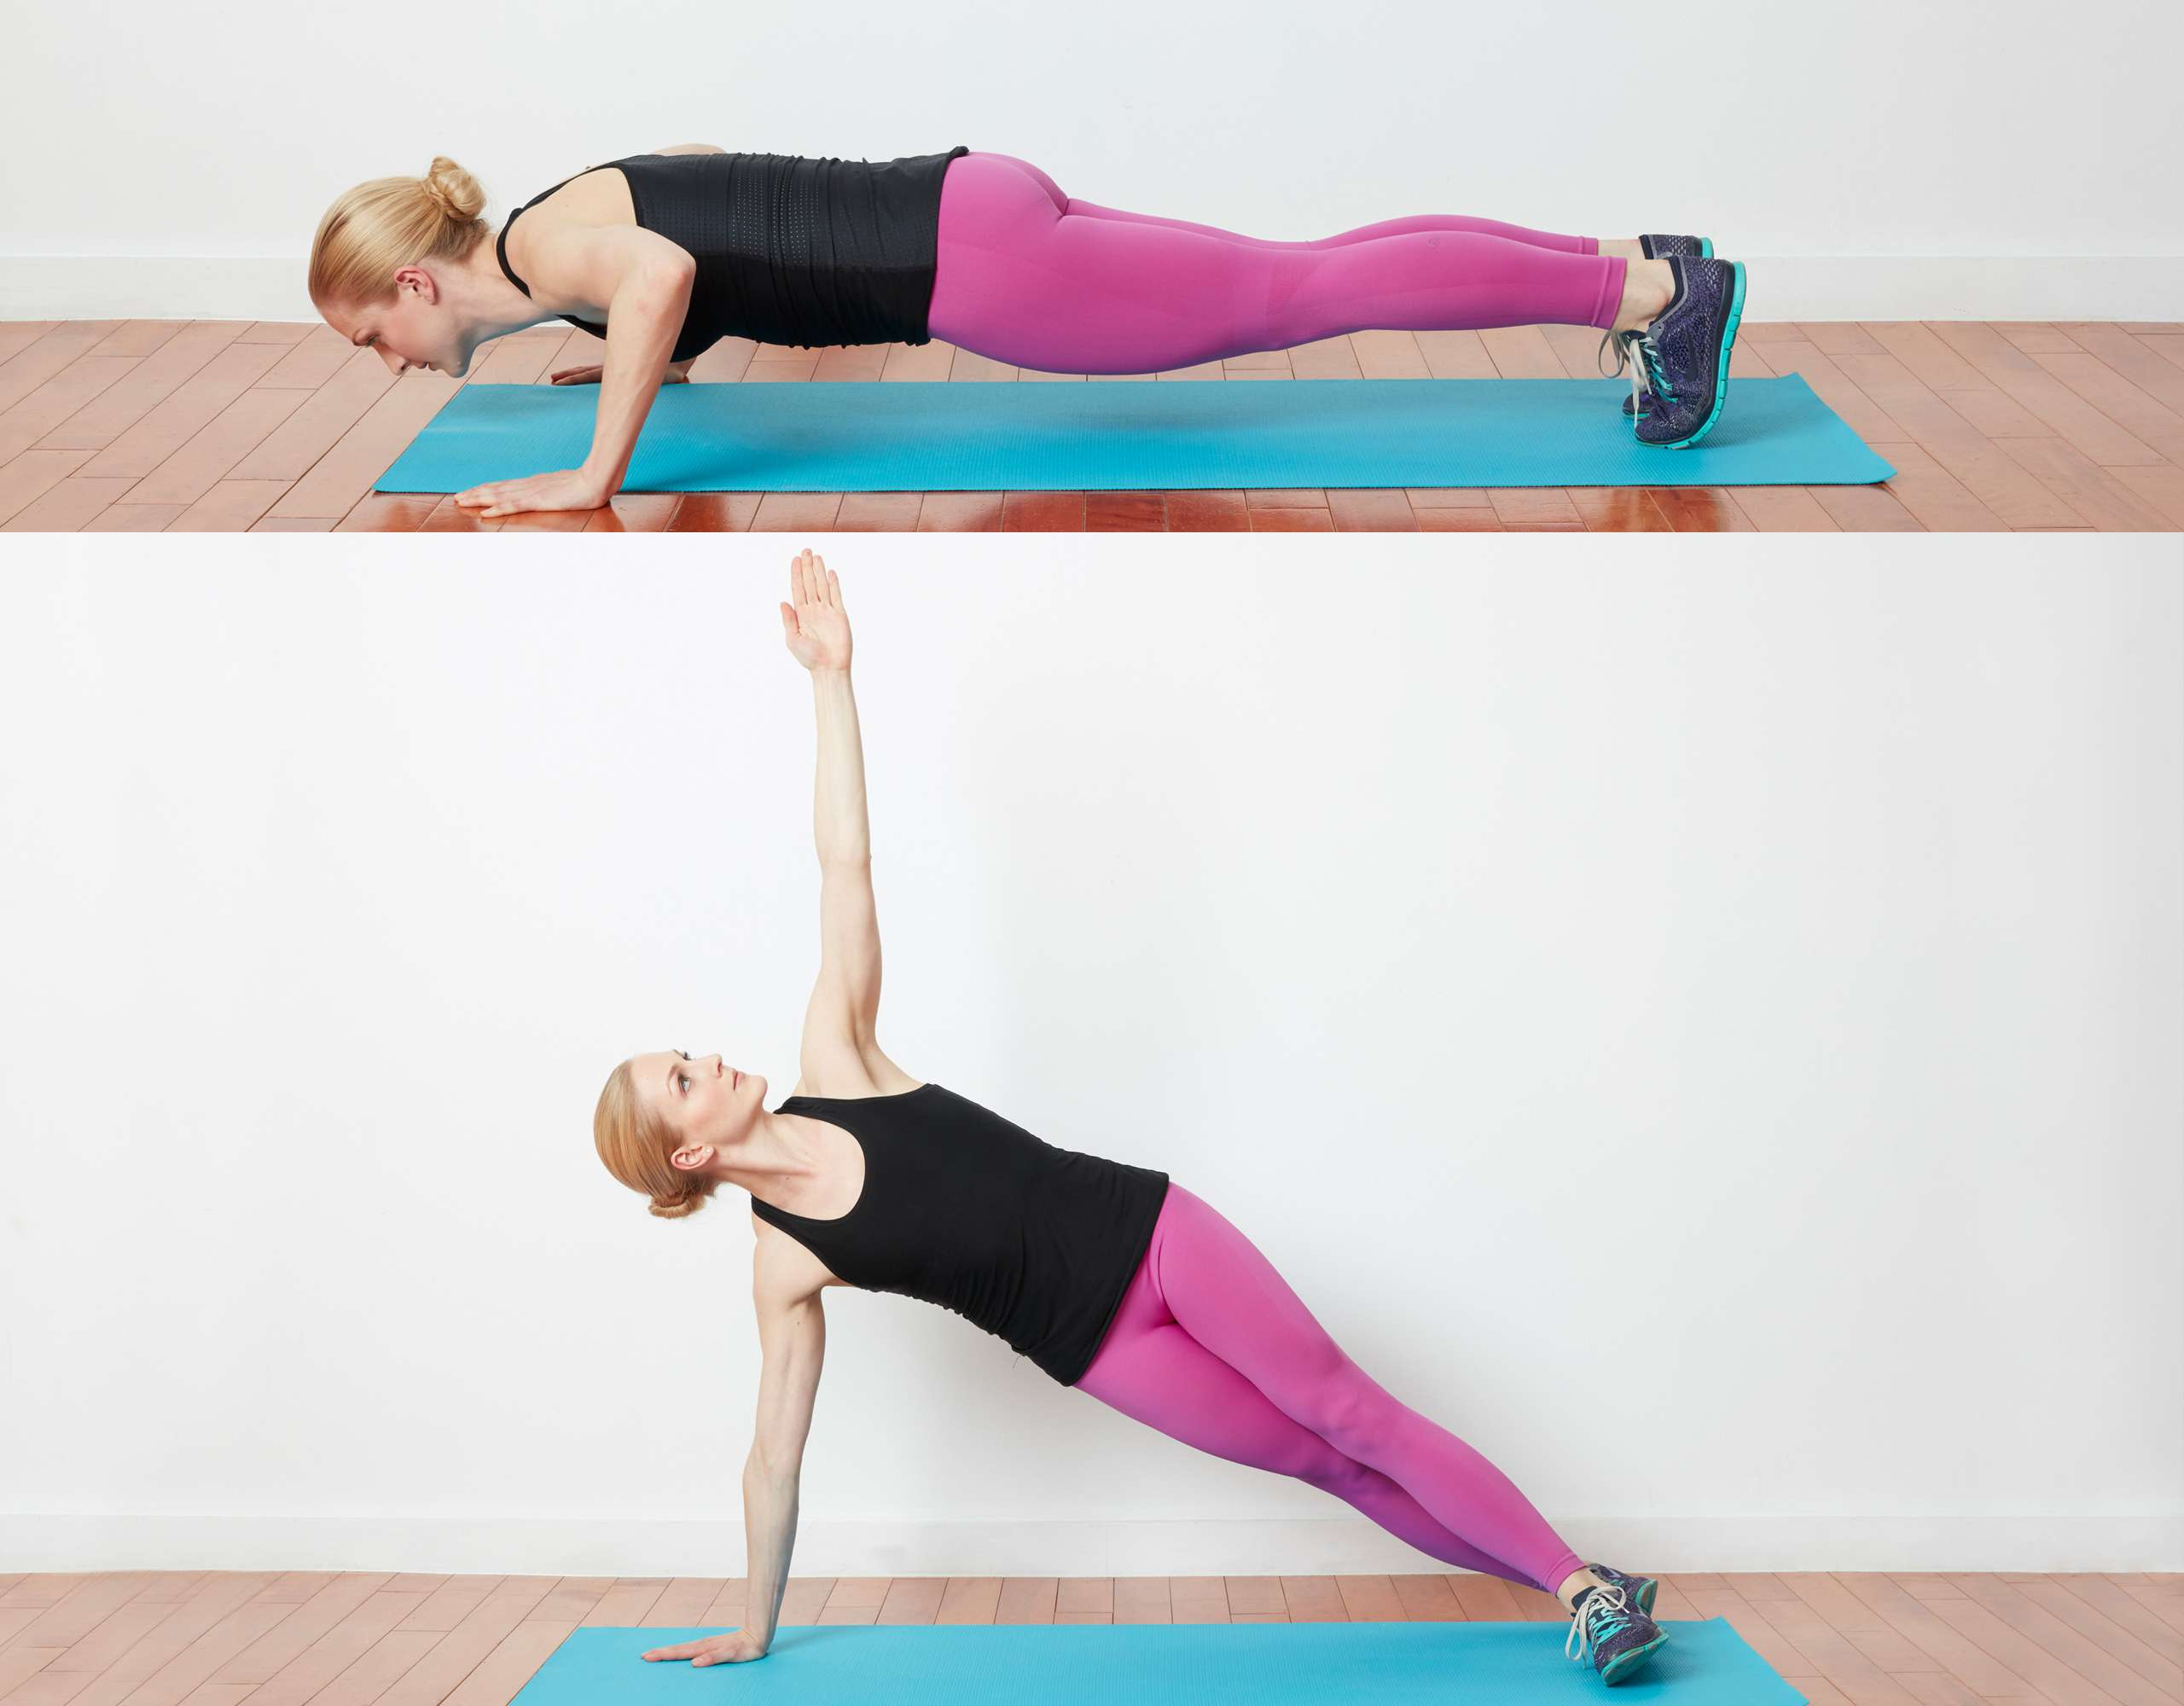 Woman doing pushup side plank exercise